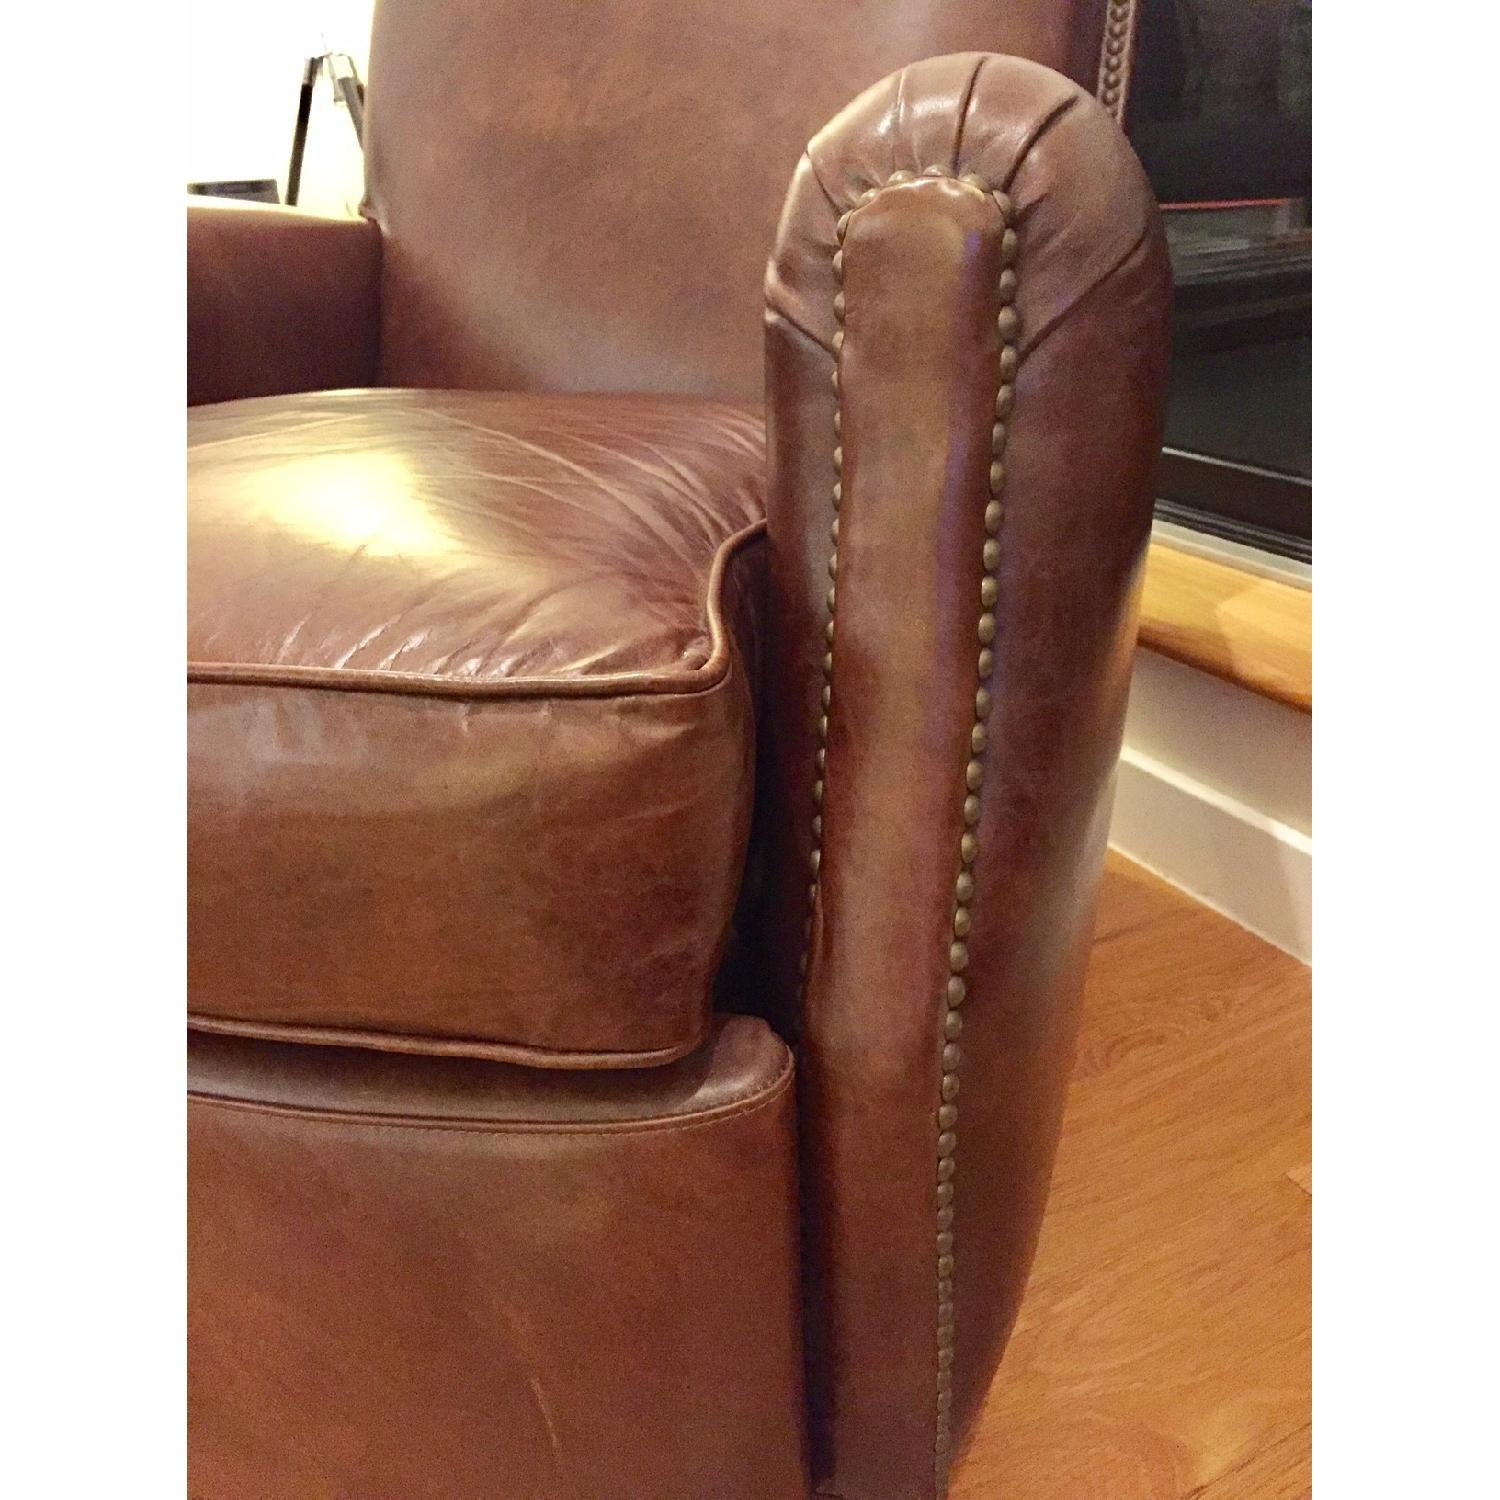 Restoration Hardware Keaton Leather Club Recliner - image-1